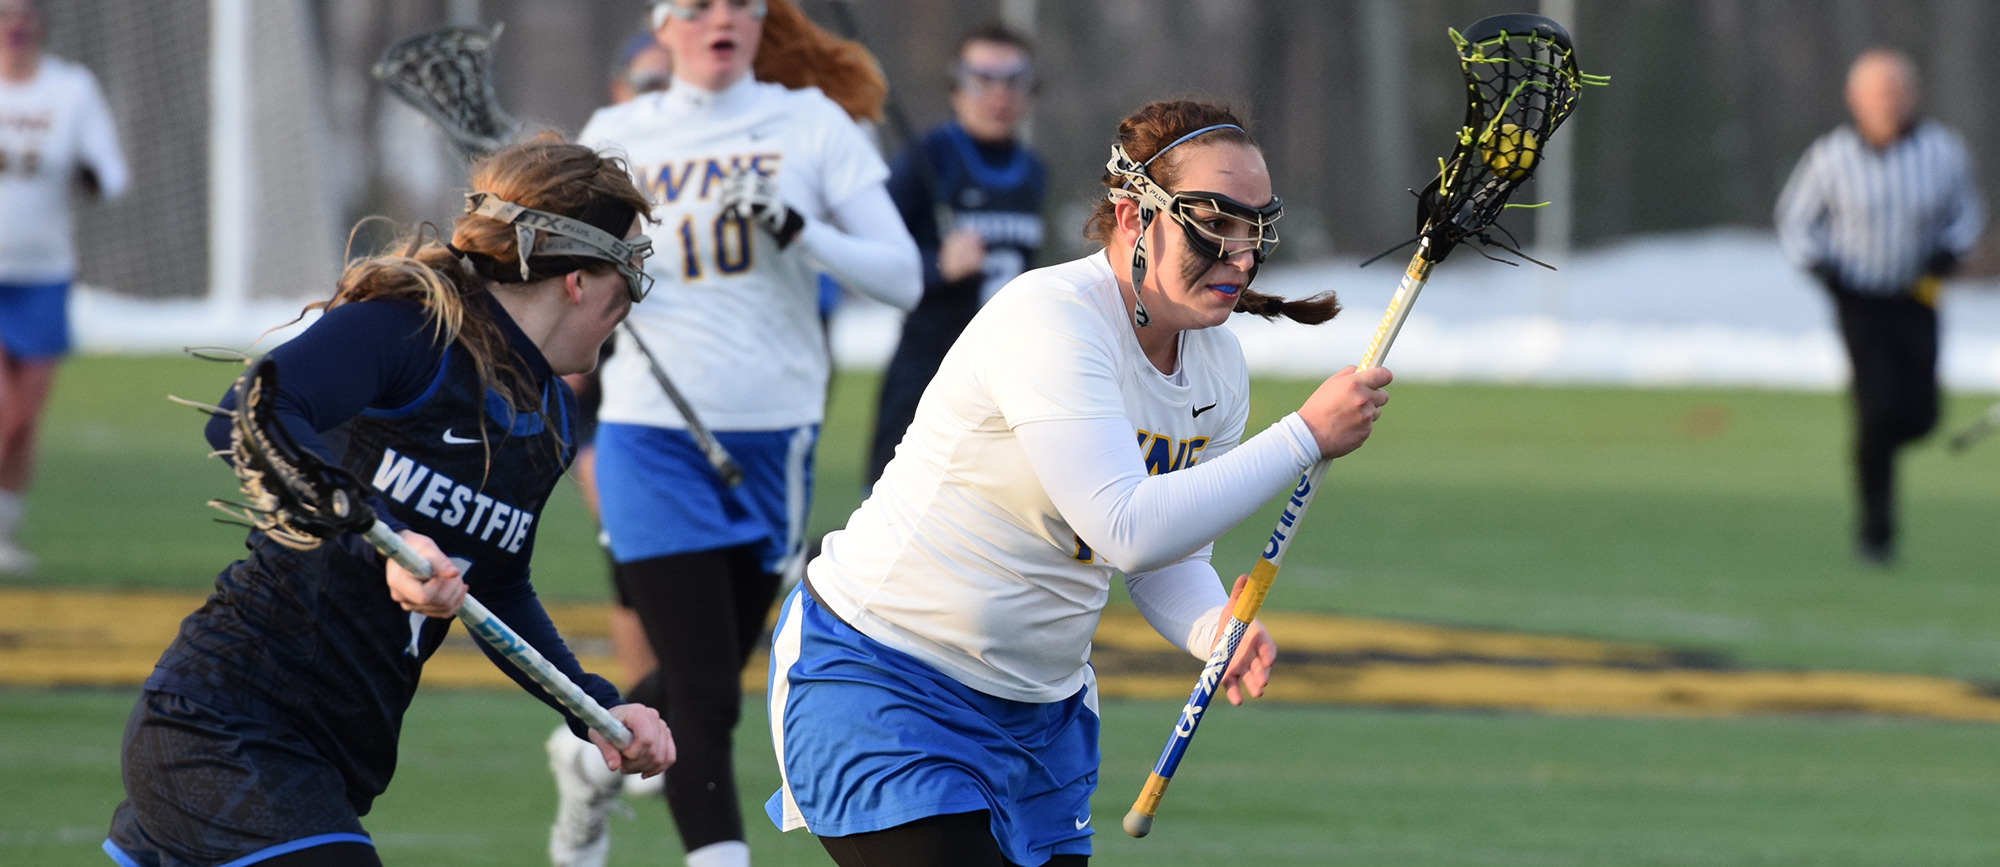 Sophomore Olivia Truenow scored her first career goal and added two assists in Western New England's 16-5 loss to Westfield State on Friday. (Photo by Rachael Margossian)